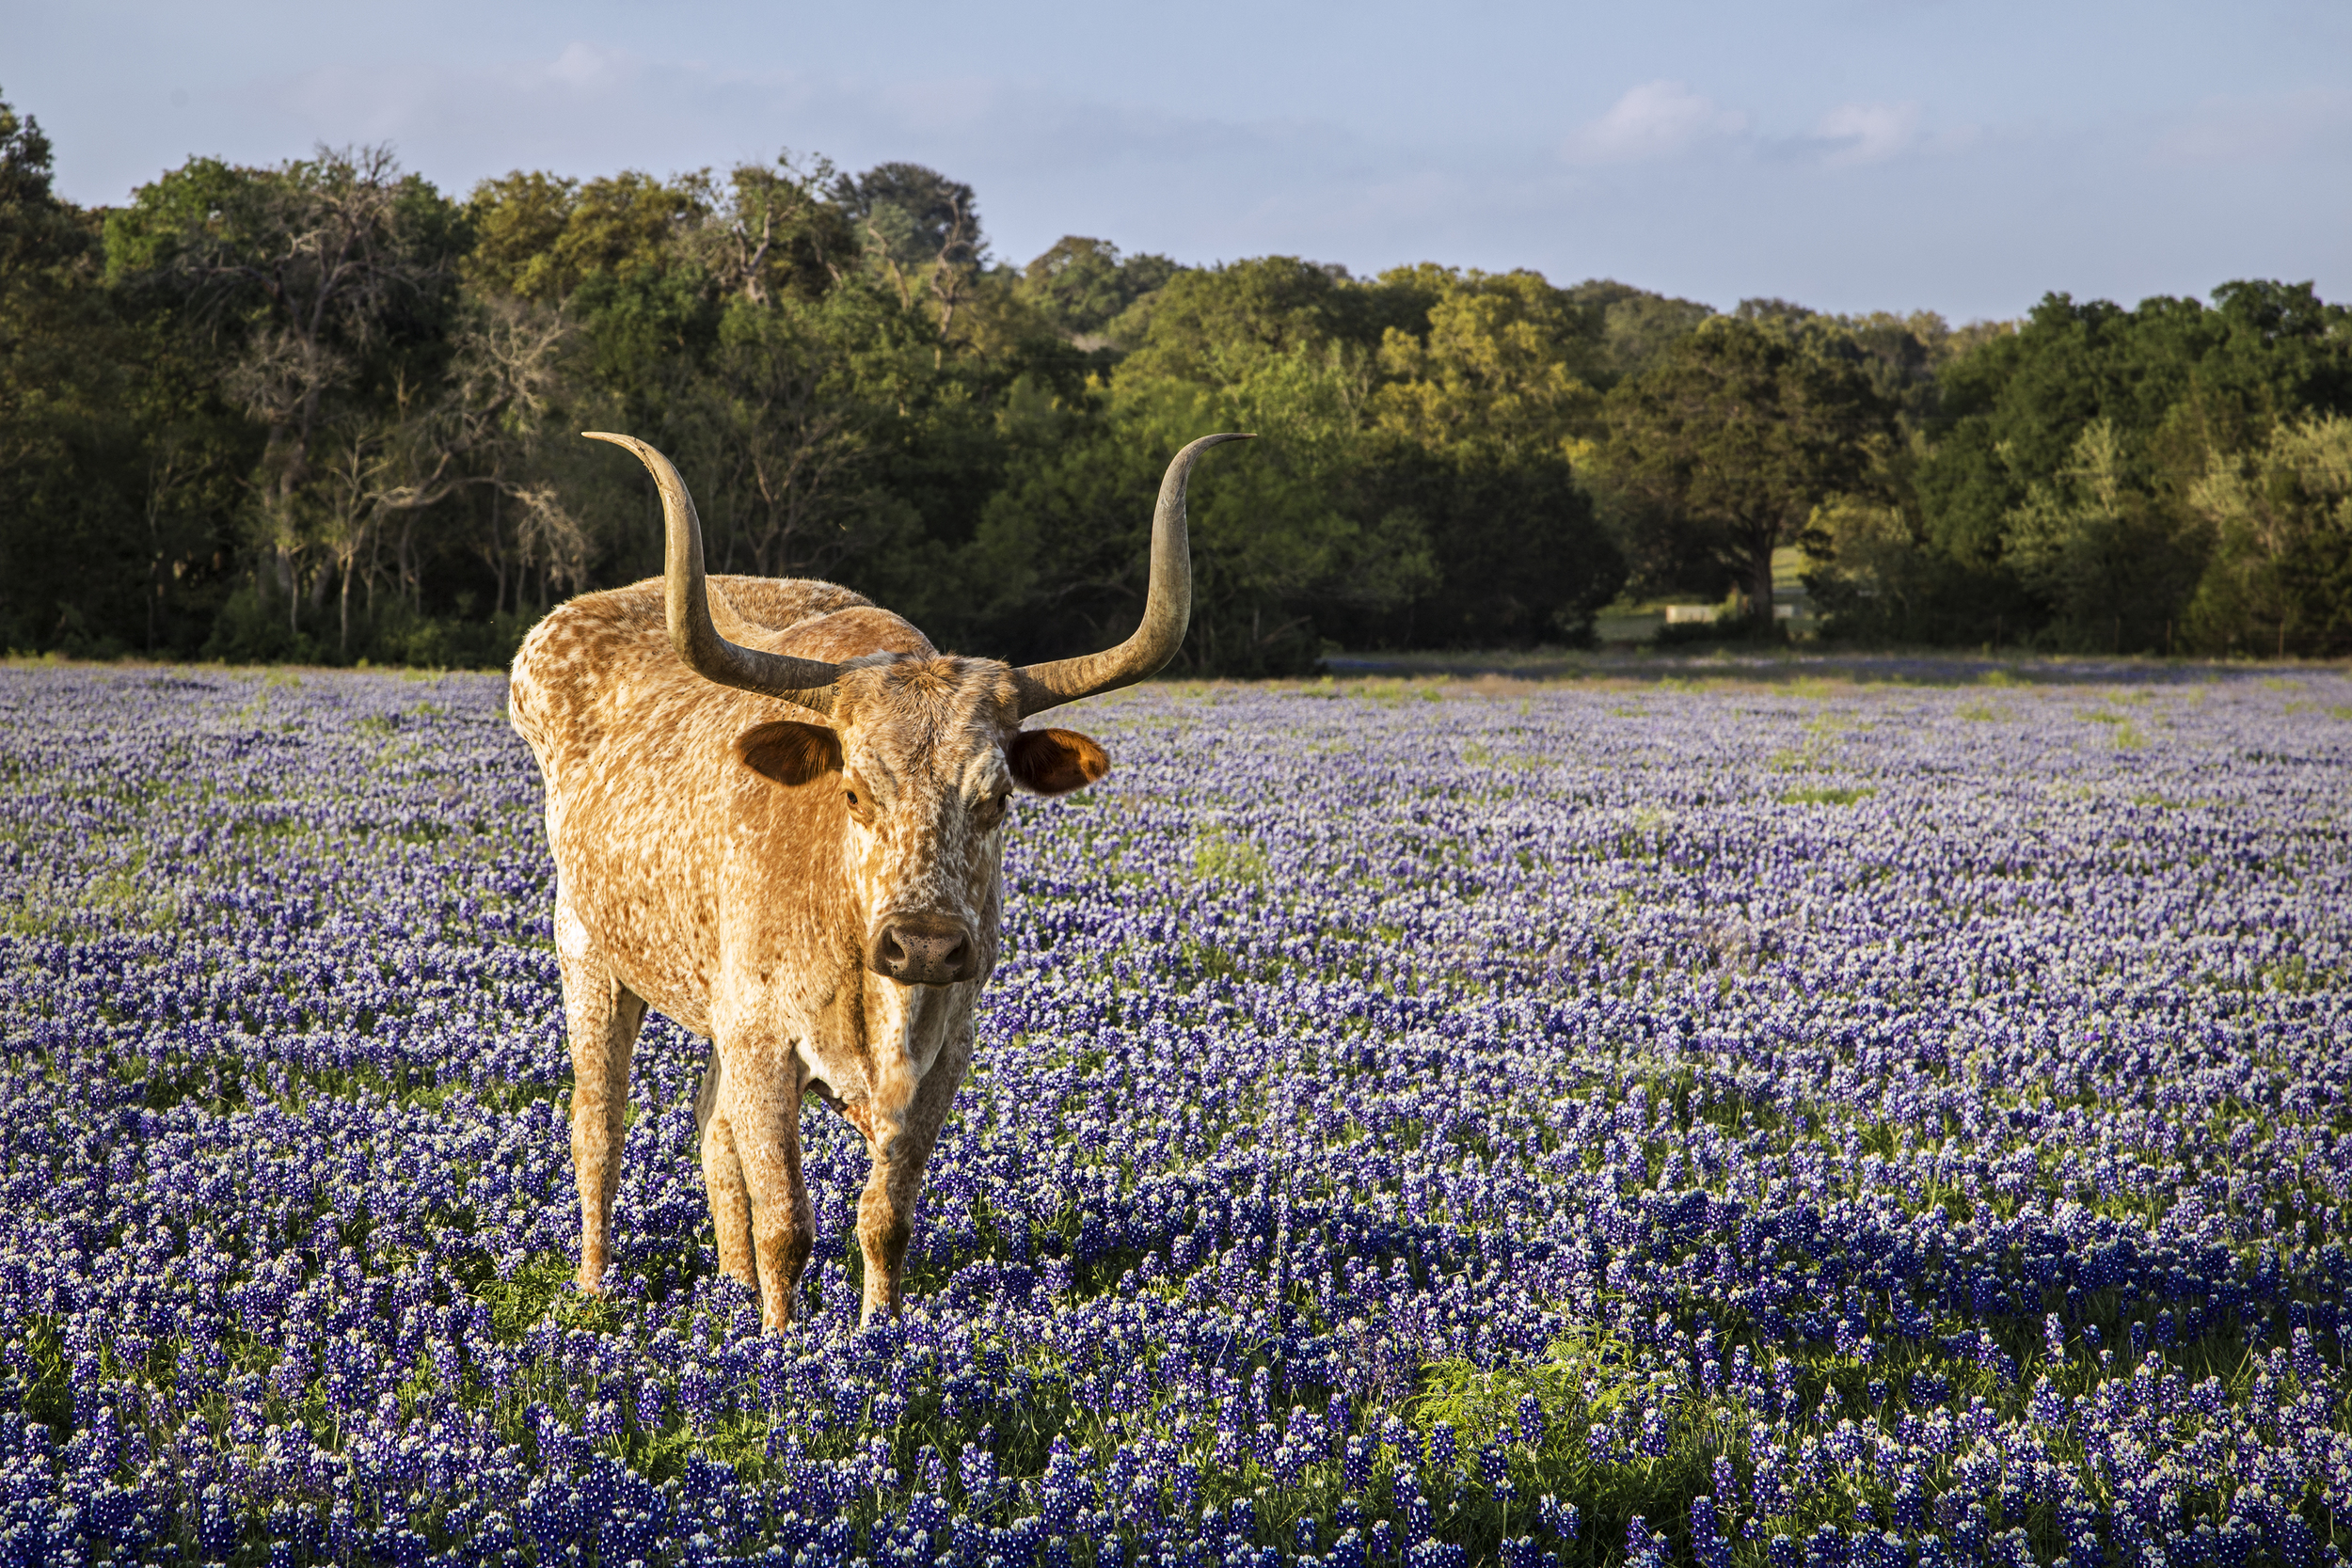 Texas longhorn in a field of bluebonnets near Seward Junction, Texas